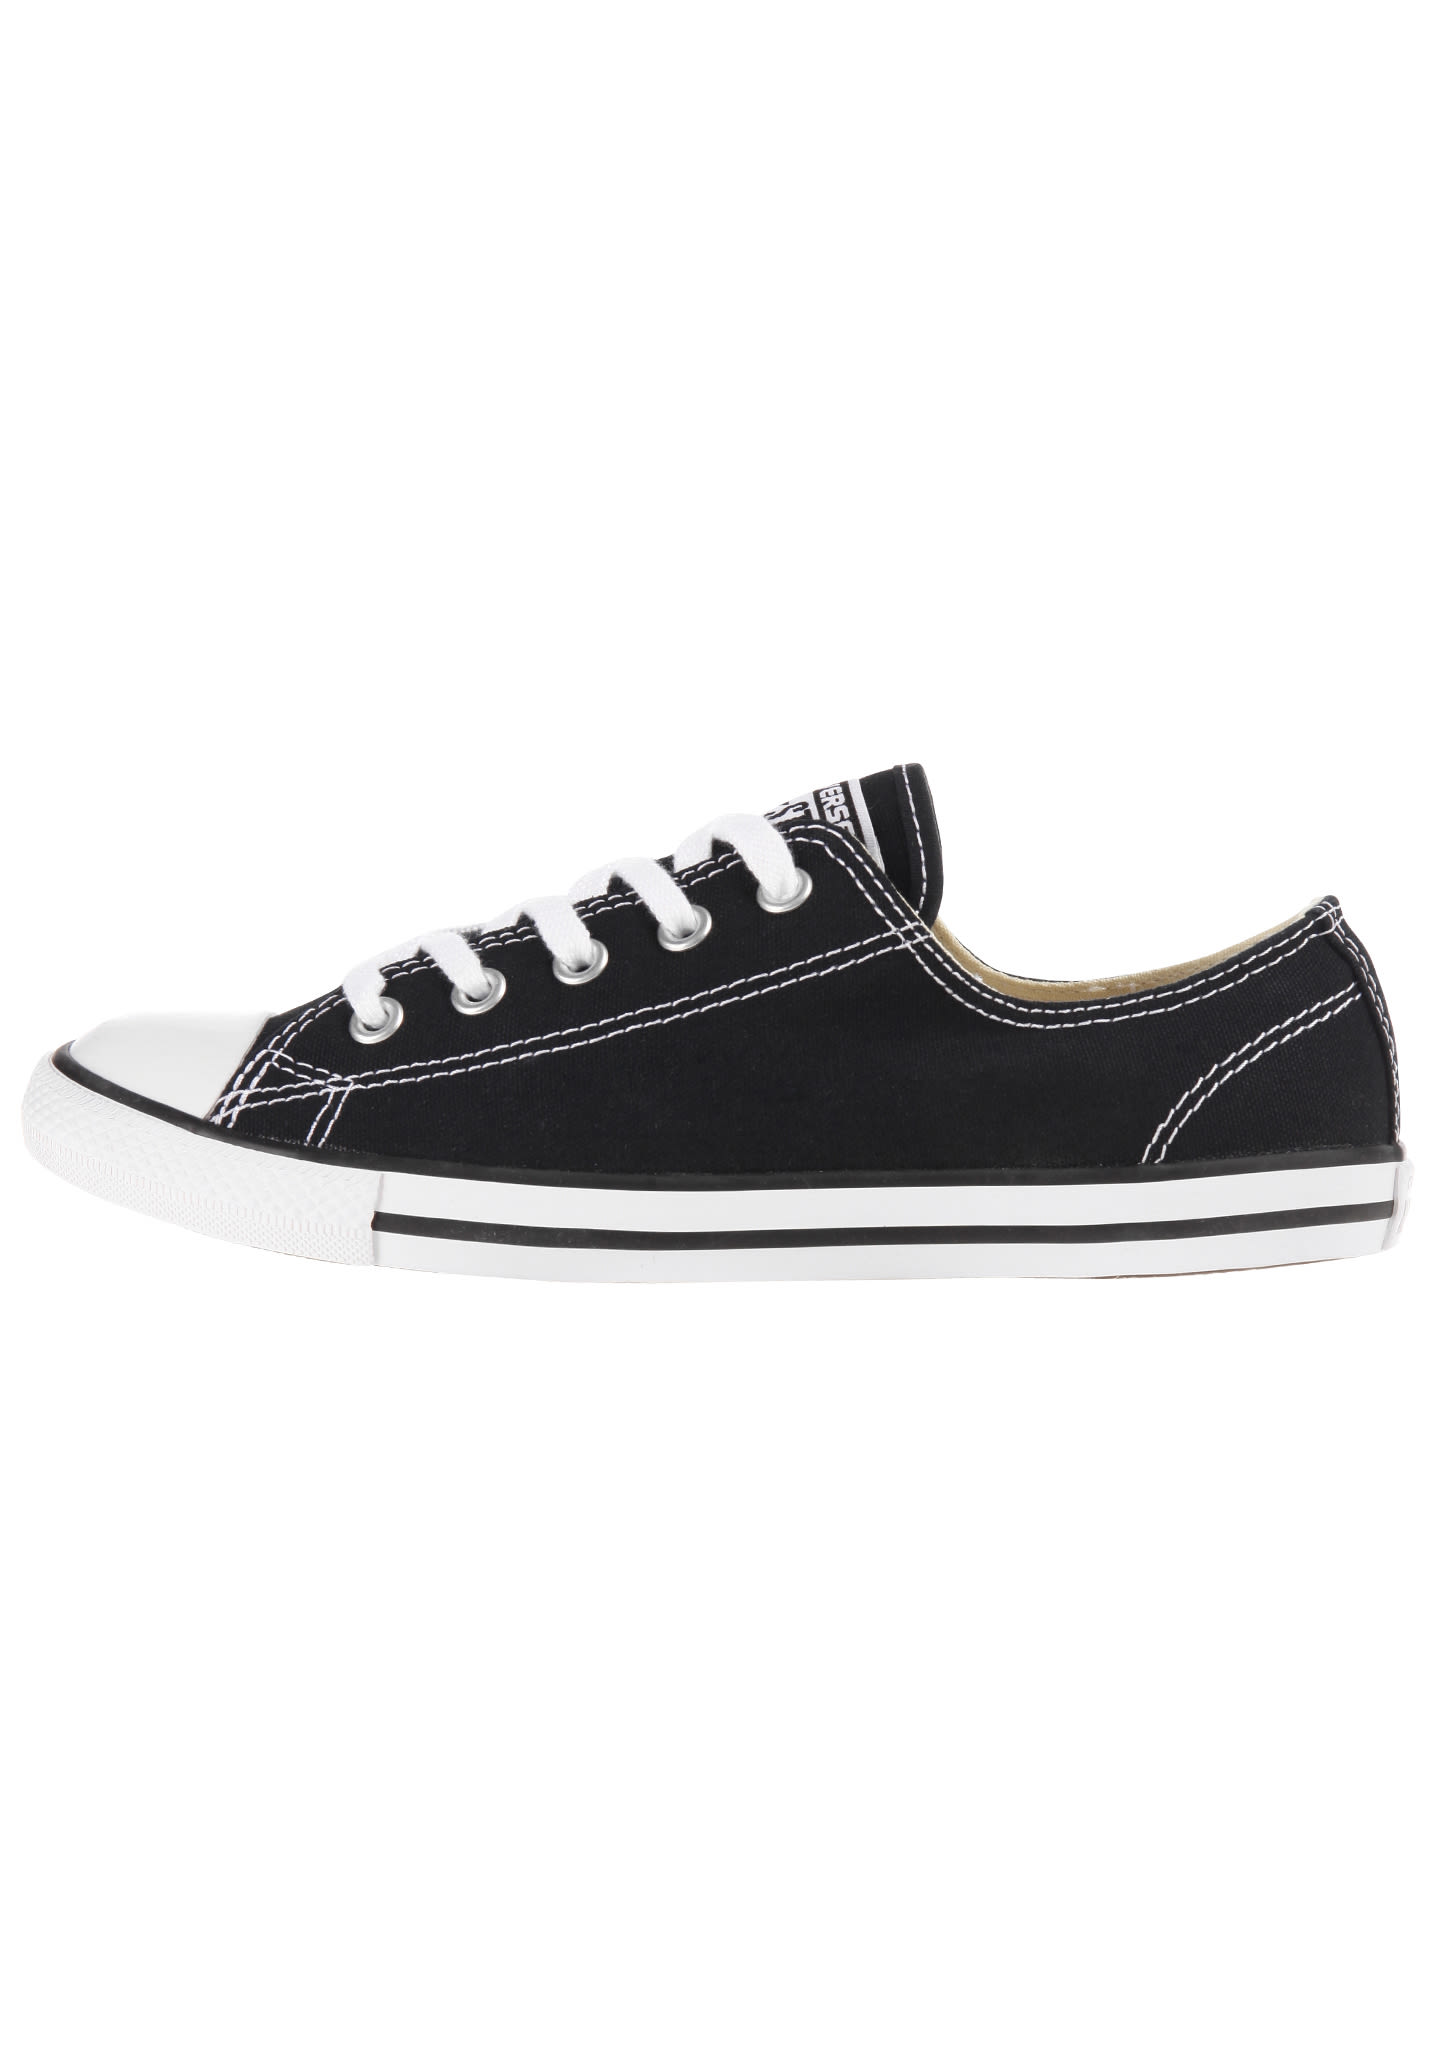 4074e476243a Converse Chuck Taylor All Star Dainty Ox - Sneakers for Women - Black - Planet  Sports